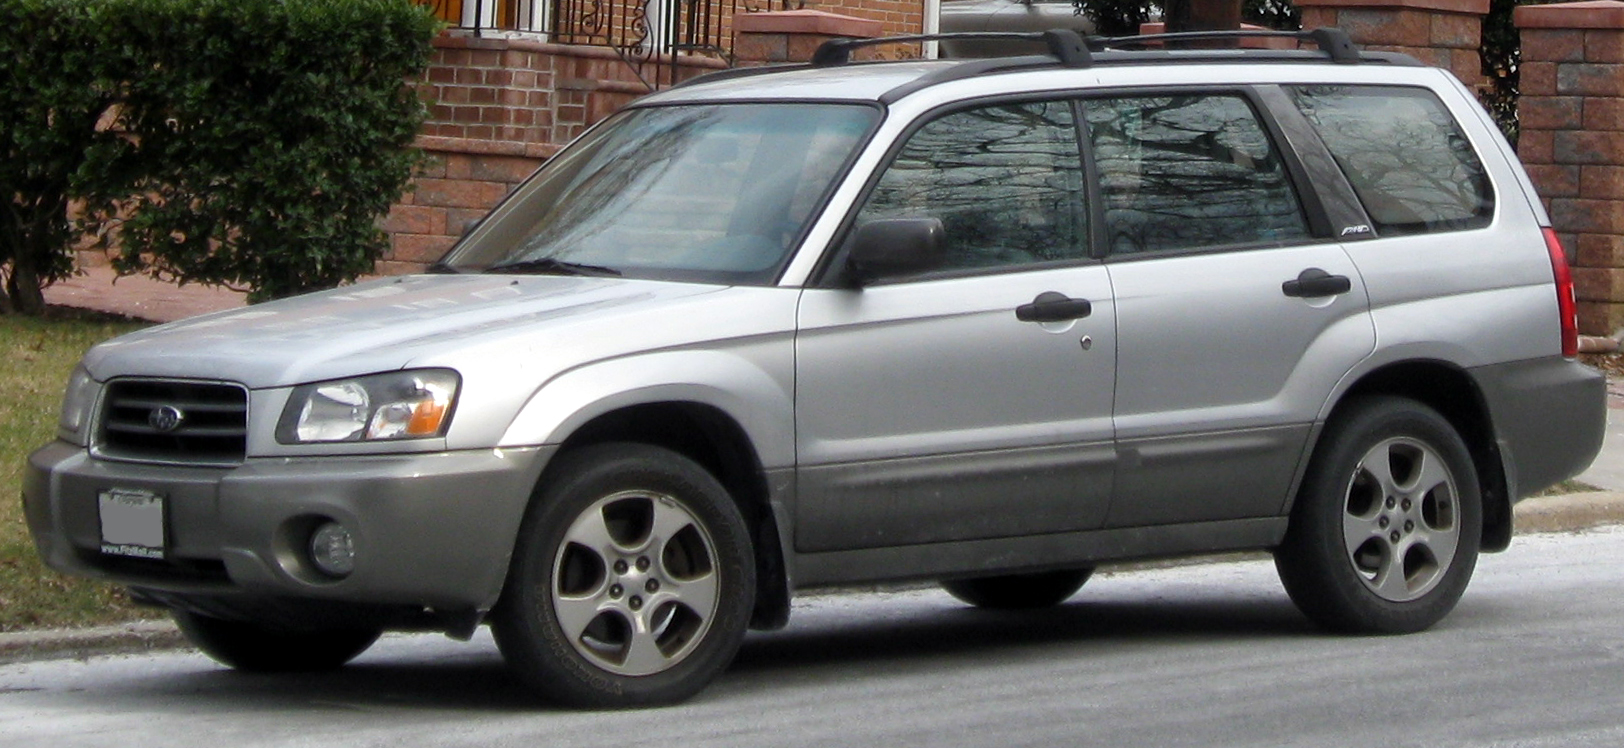 File 2003 2005 Subaru Forester 02 14 2012 Jpg Wikipedia